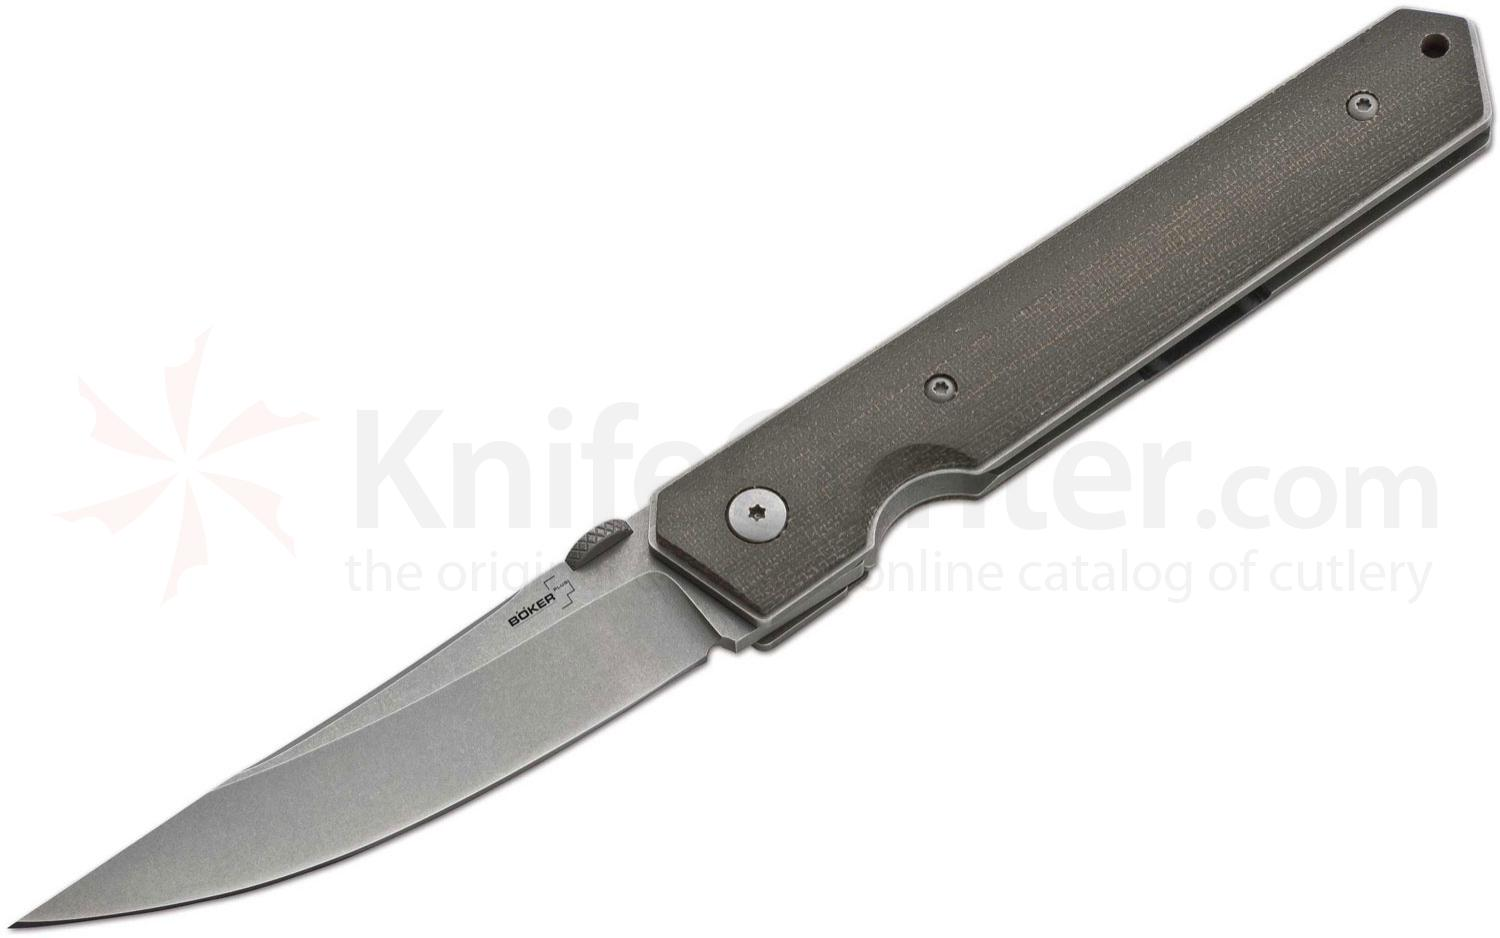 Boker Plus Burnley Kwaiken Folding Knife 3.5 inch Blade, Micarta Handles